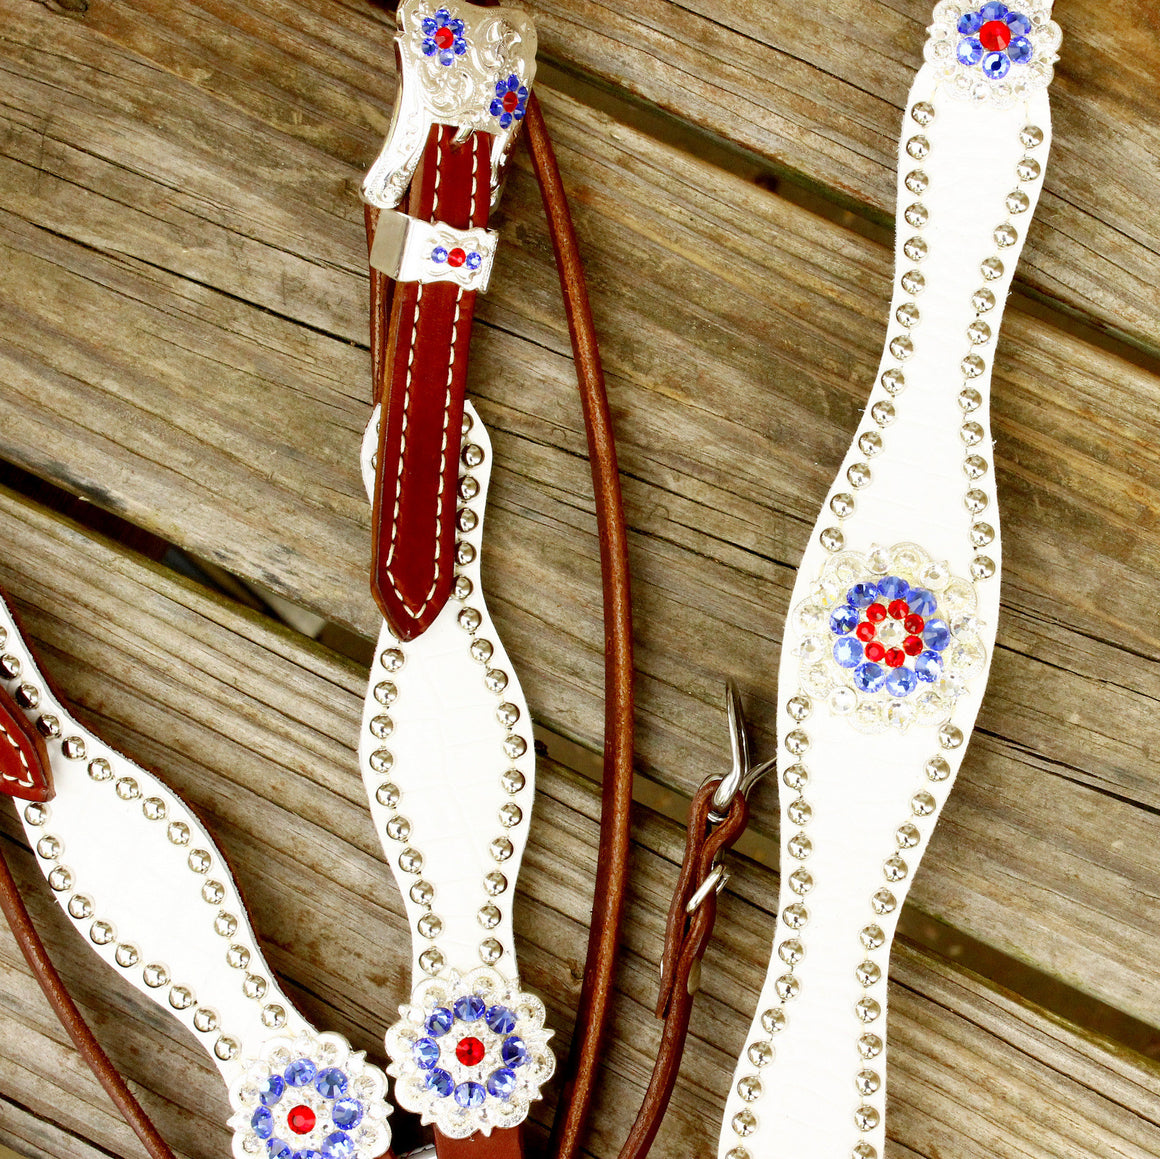 White Gator/Chestnut Leather Browband Tack Set w/Sapphire ,Red & Clear Crystal Rhinestone Conchos